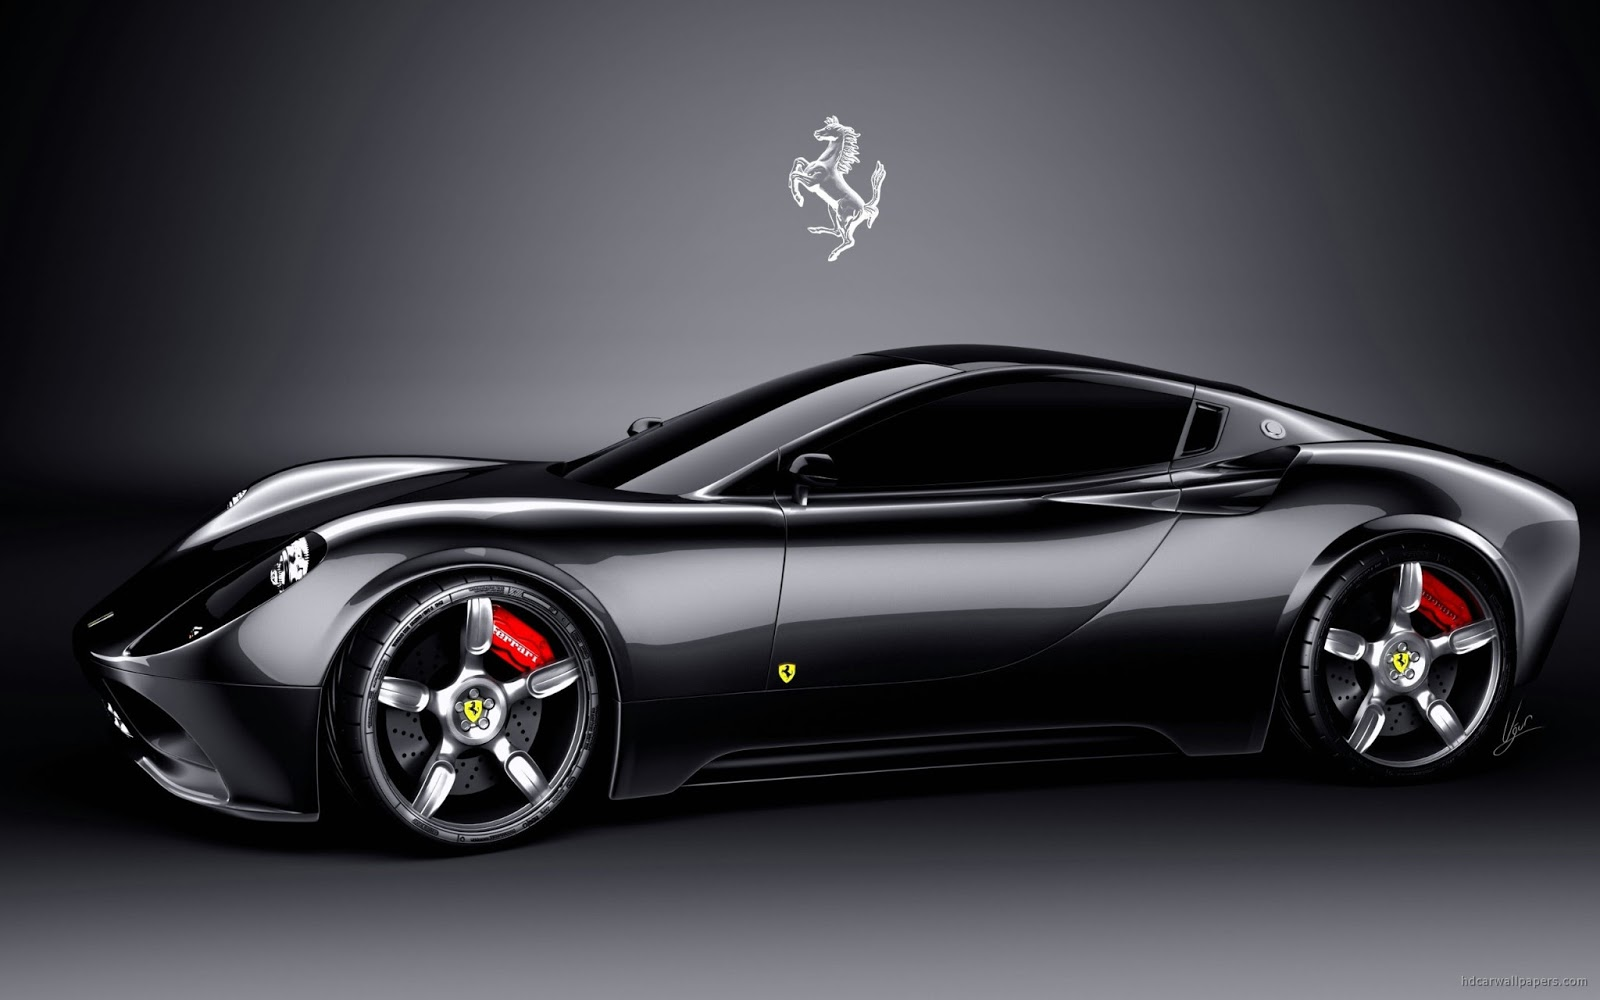 Cool Sports Cars Ferrari: New Cool Cars 2013